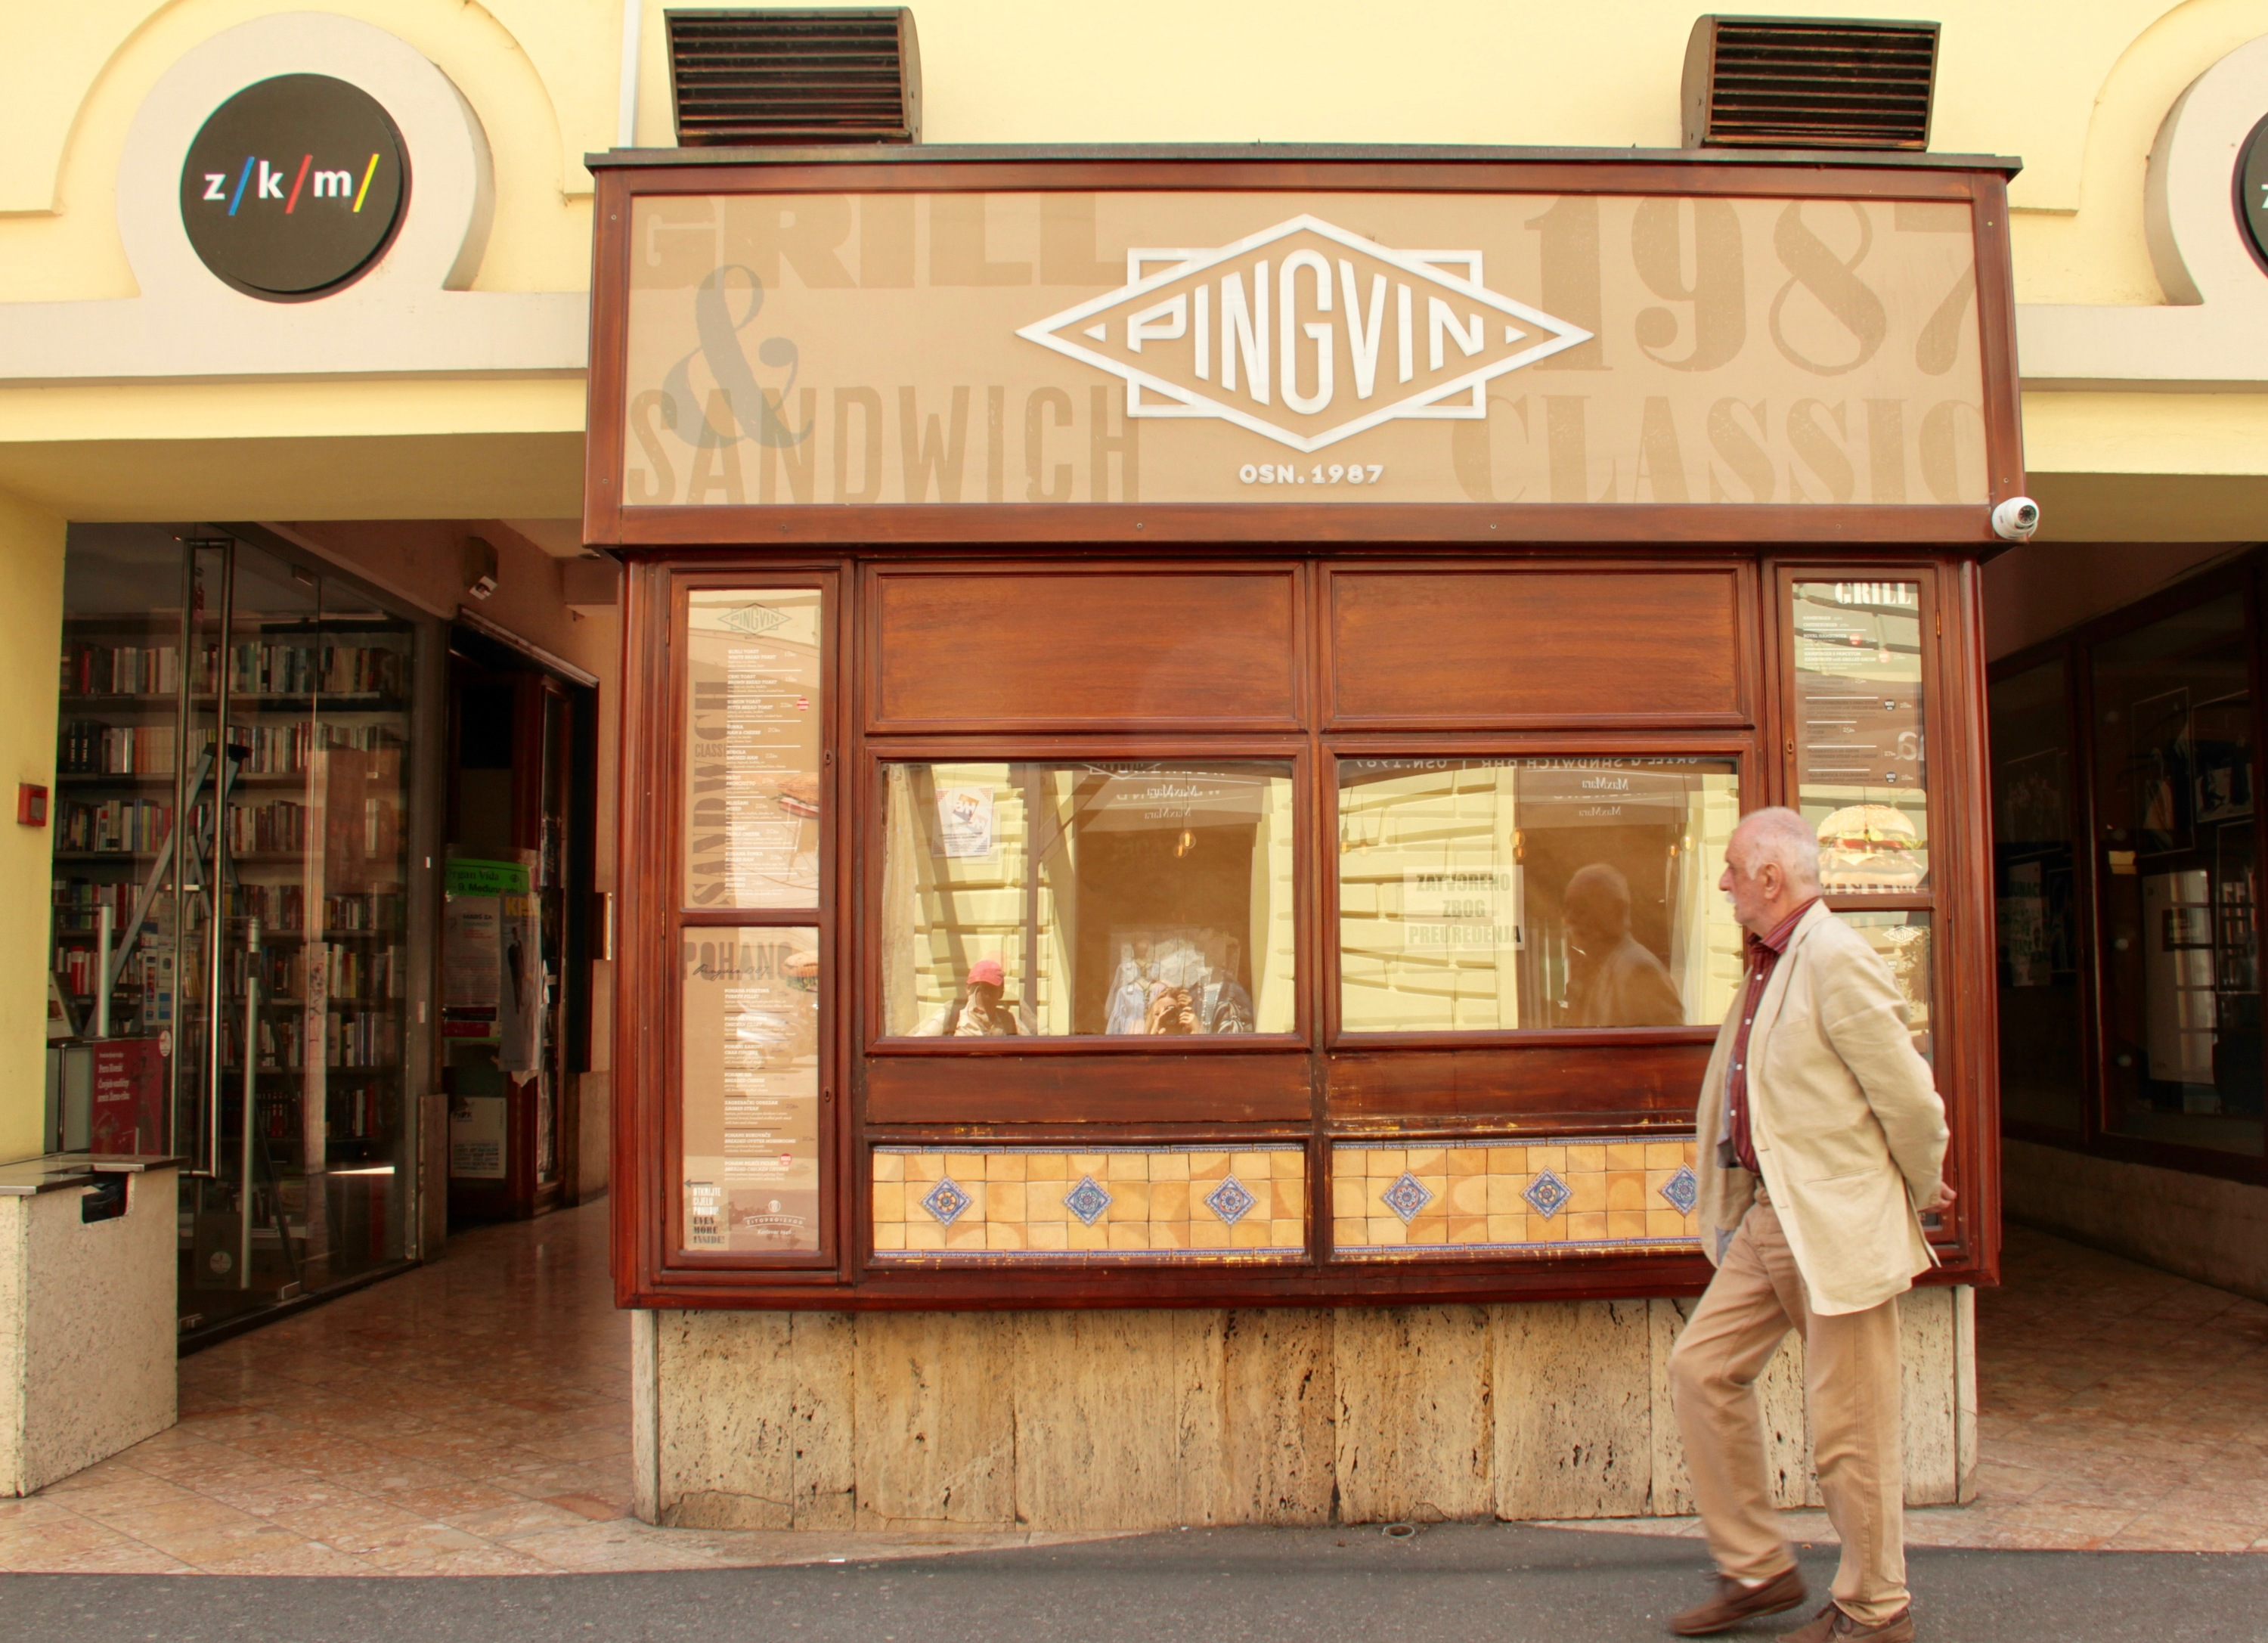 Don't worry: Zagreb's sacred sandwich shop Pingvin is just closed for refurbishment